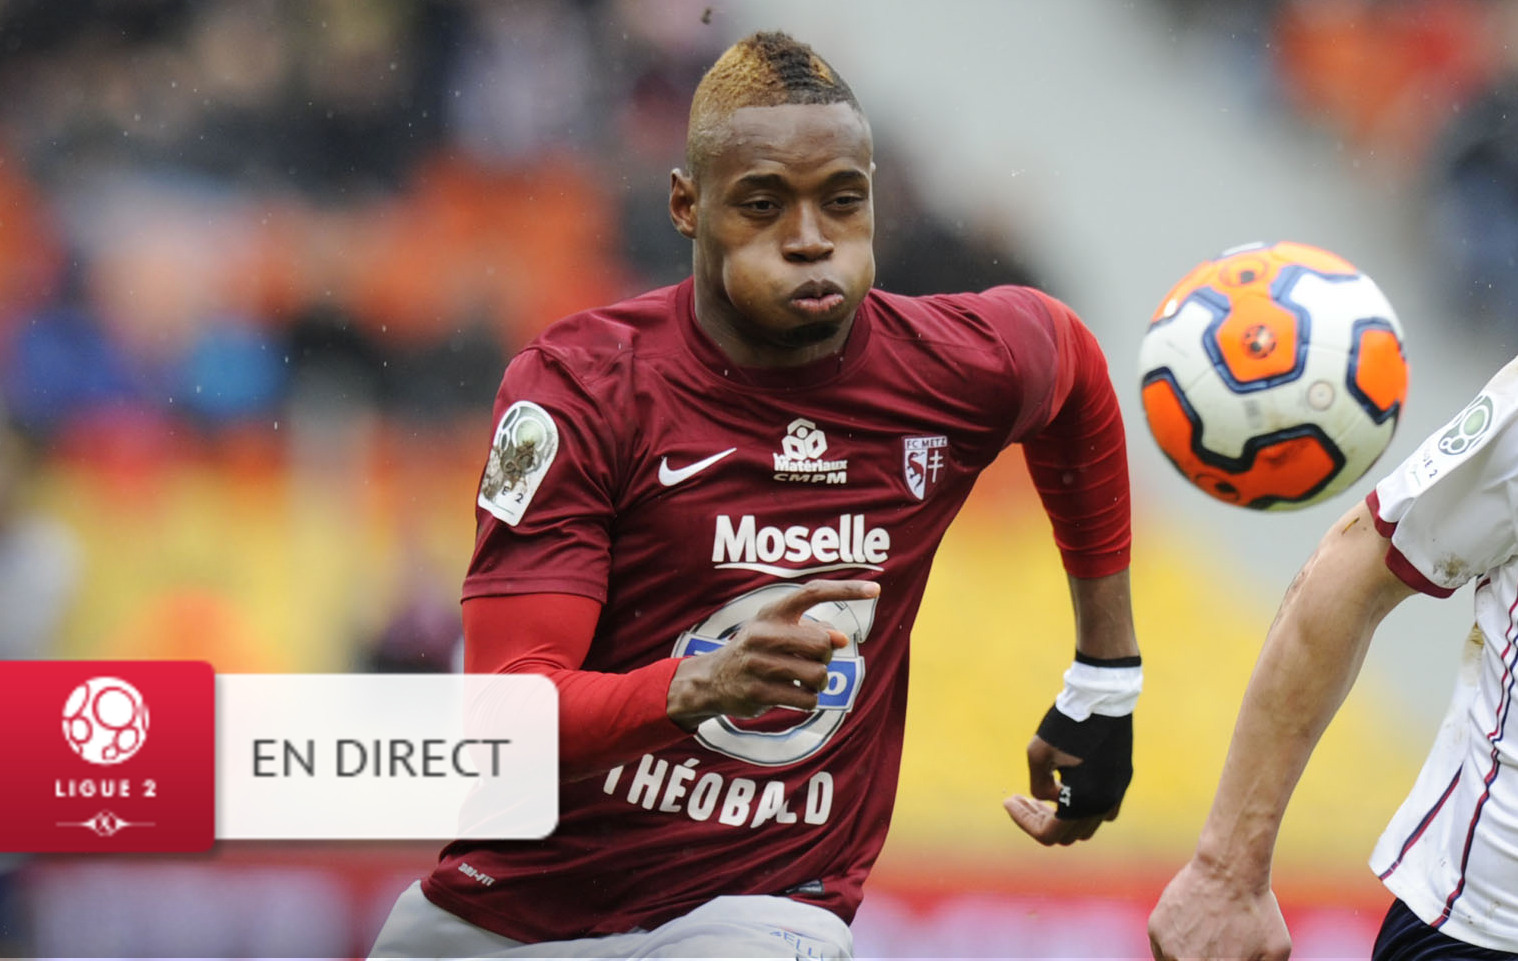 Football - Ligue 2 - Metz-Lens en DIRECT